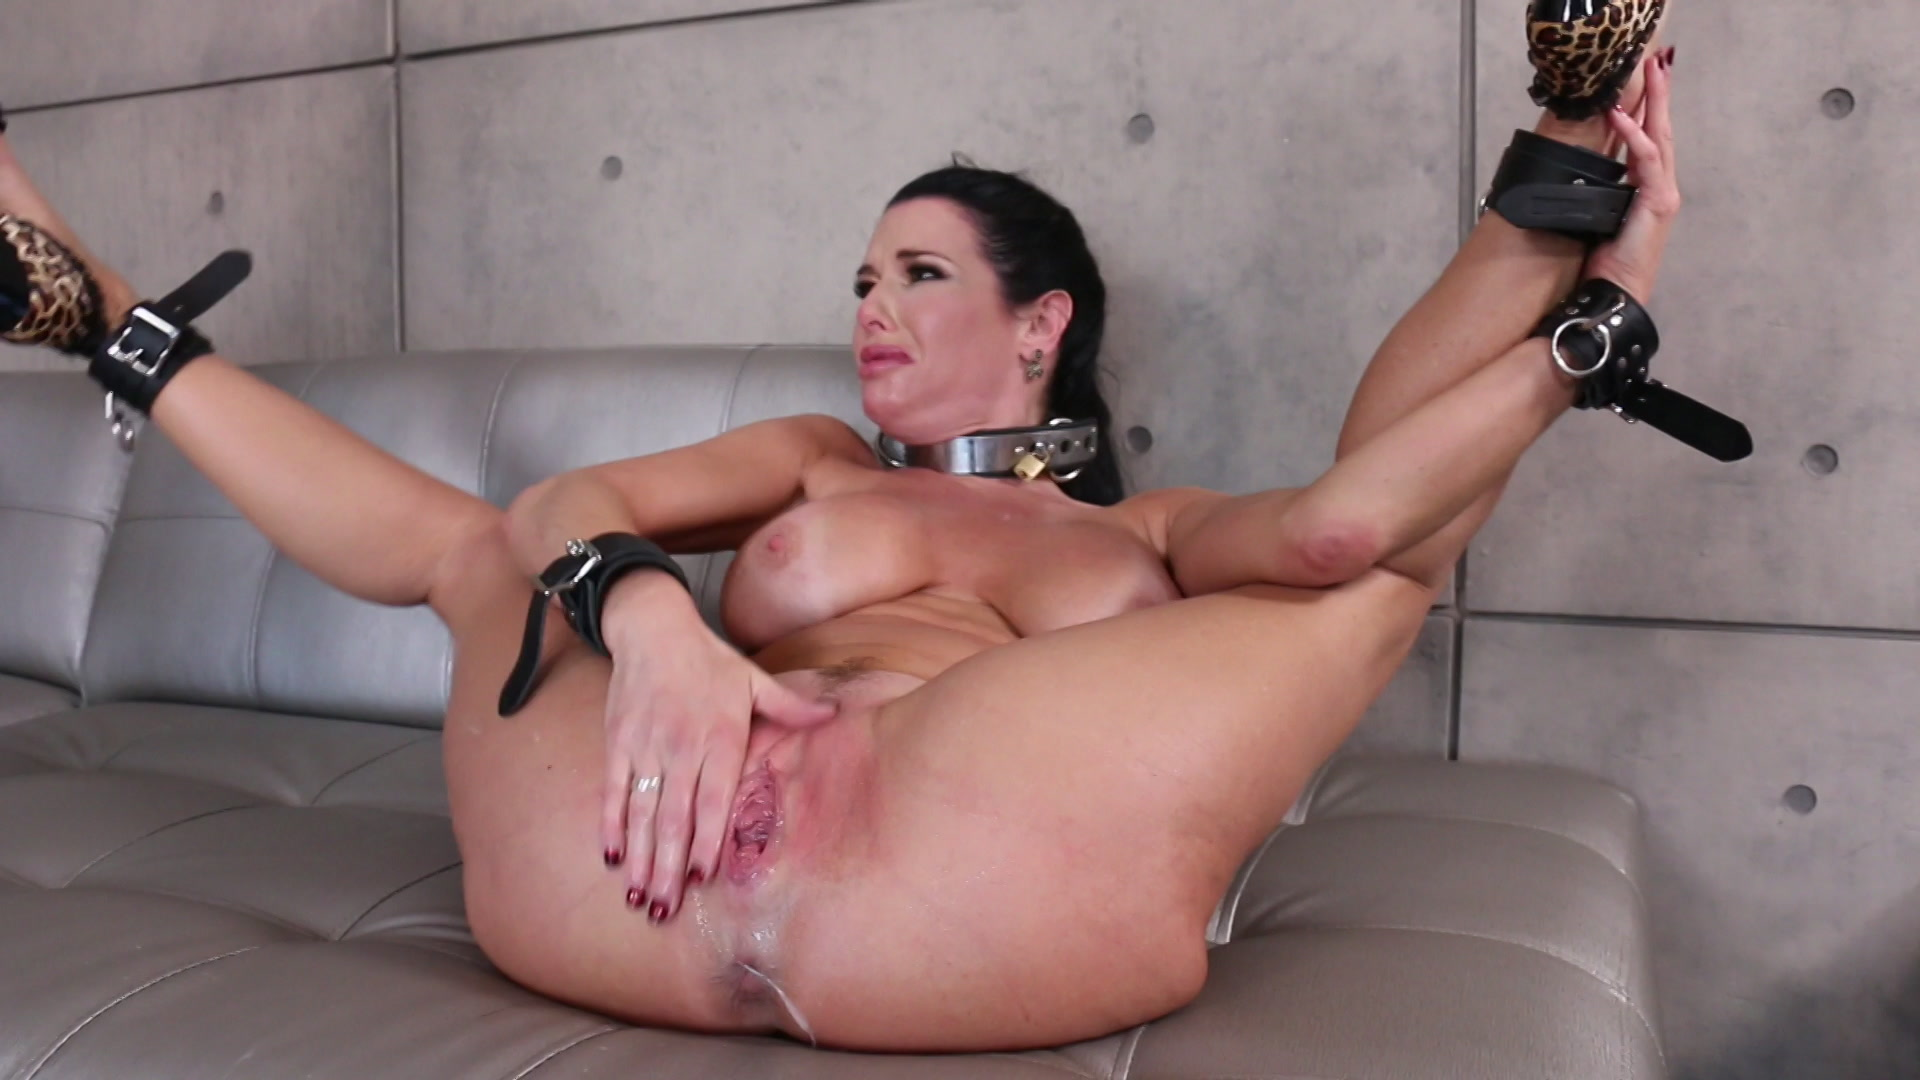 Stirling cooper, joanna angel punished with rope bondage and rough anal